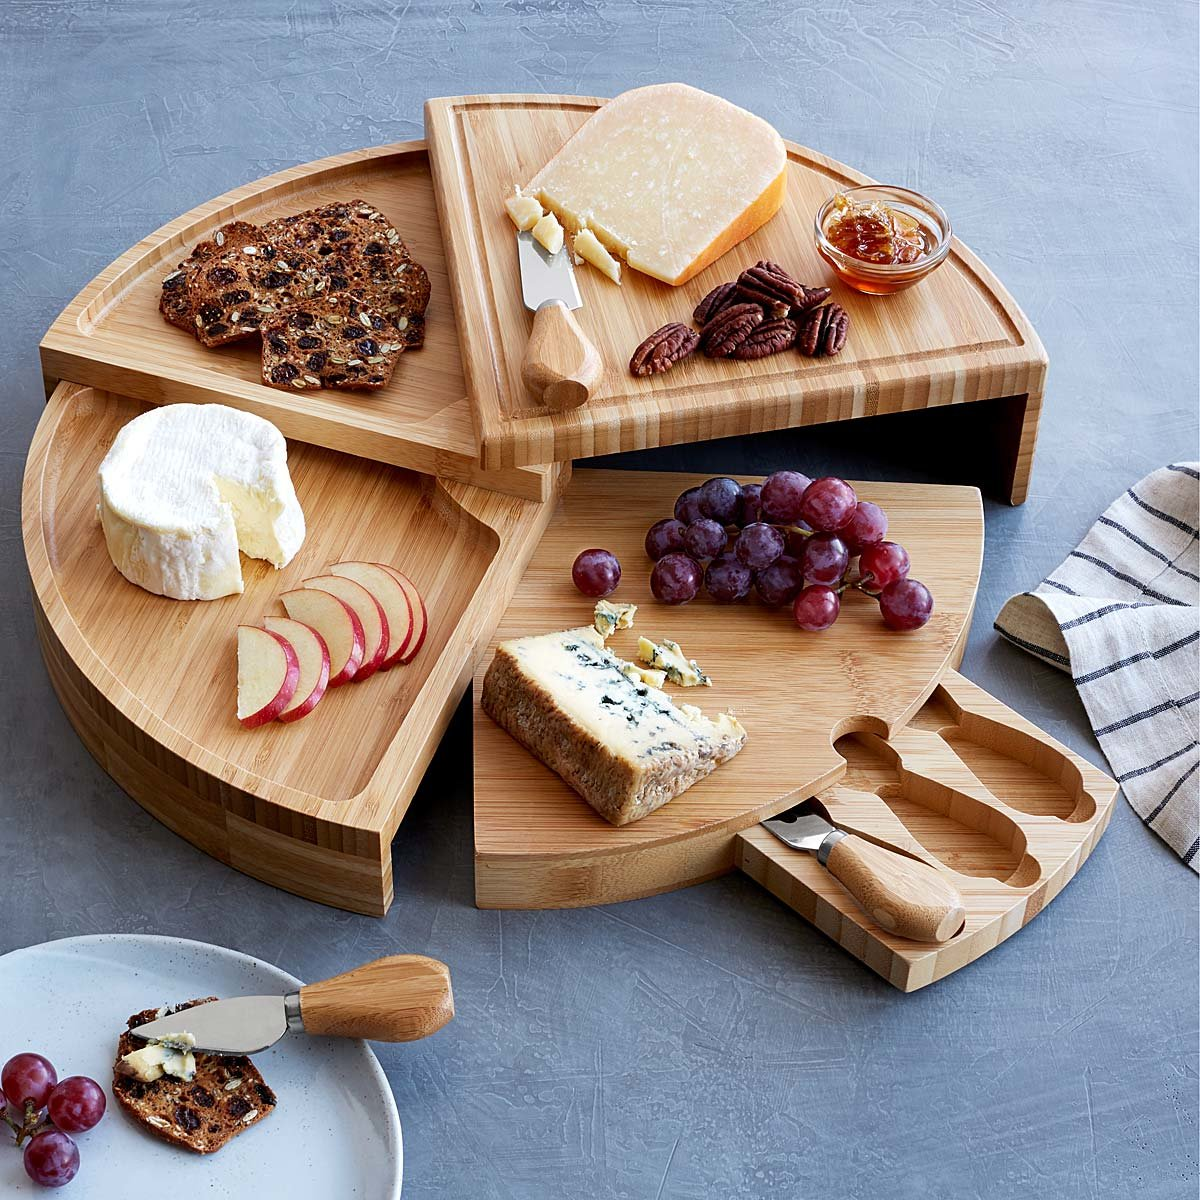 <p>This bamboo cheese board converts to a multi-level wheel and incorporates storage for serving tools. Perfect for hosting!$40-$64. (Image:{&nbsp;}Uncommongoods.com){&nbsp;}</p><p></p>